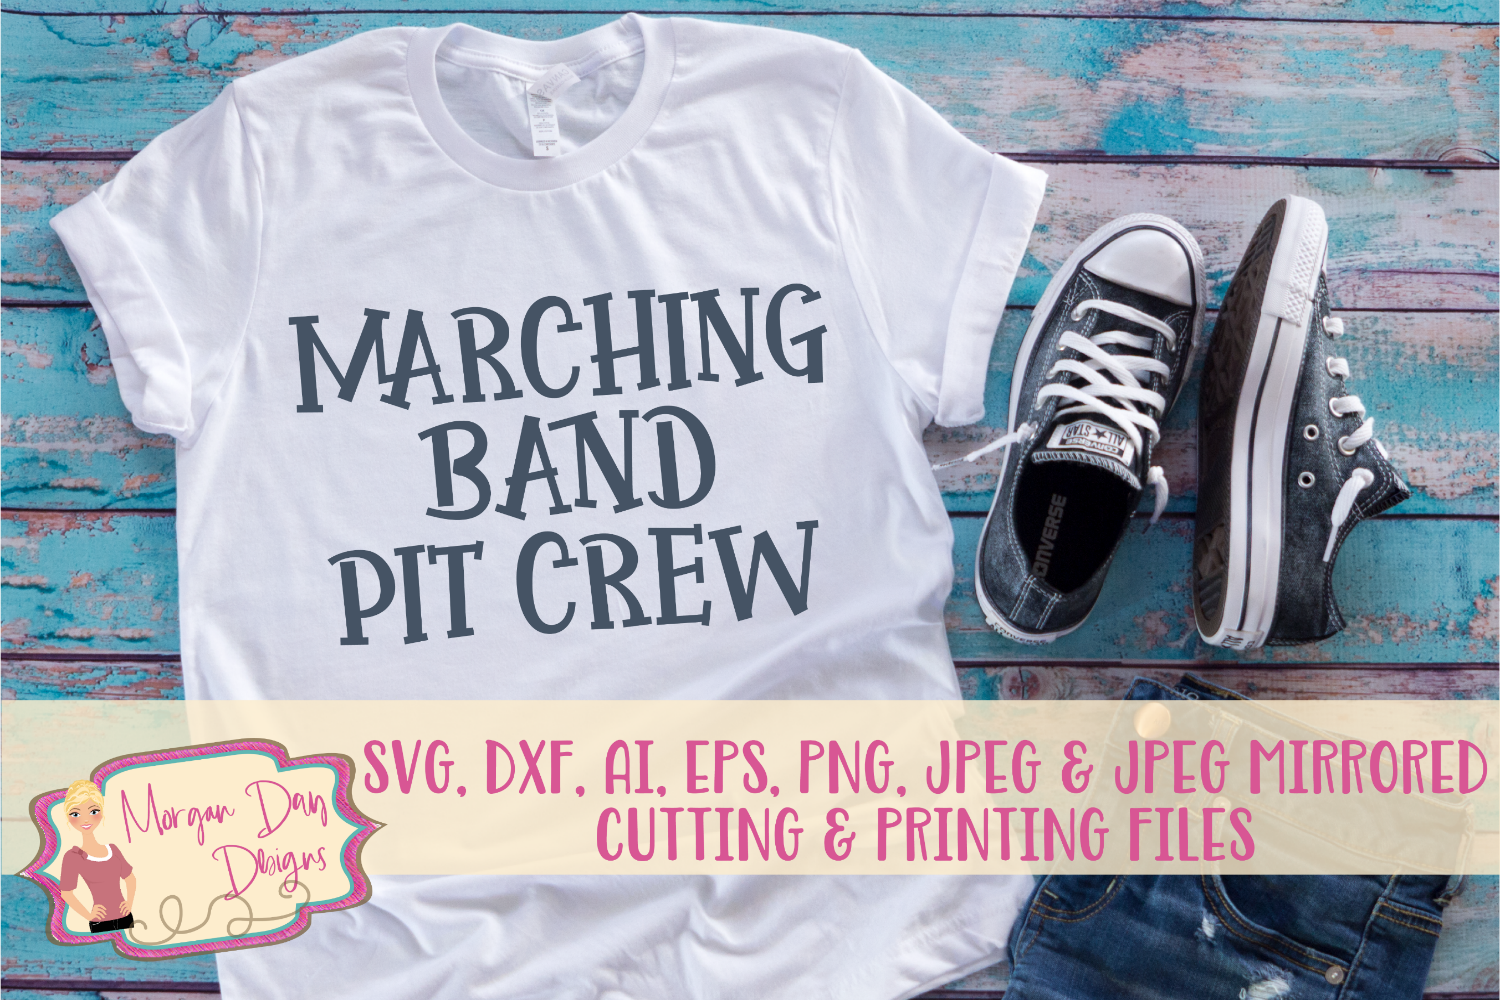 Marching Band Pit Crew SVG, DXF, AI, EPS, PNG, JPEG example image 1